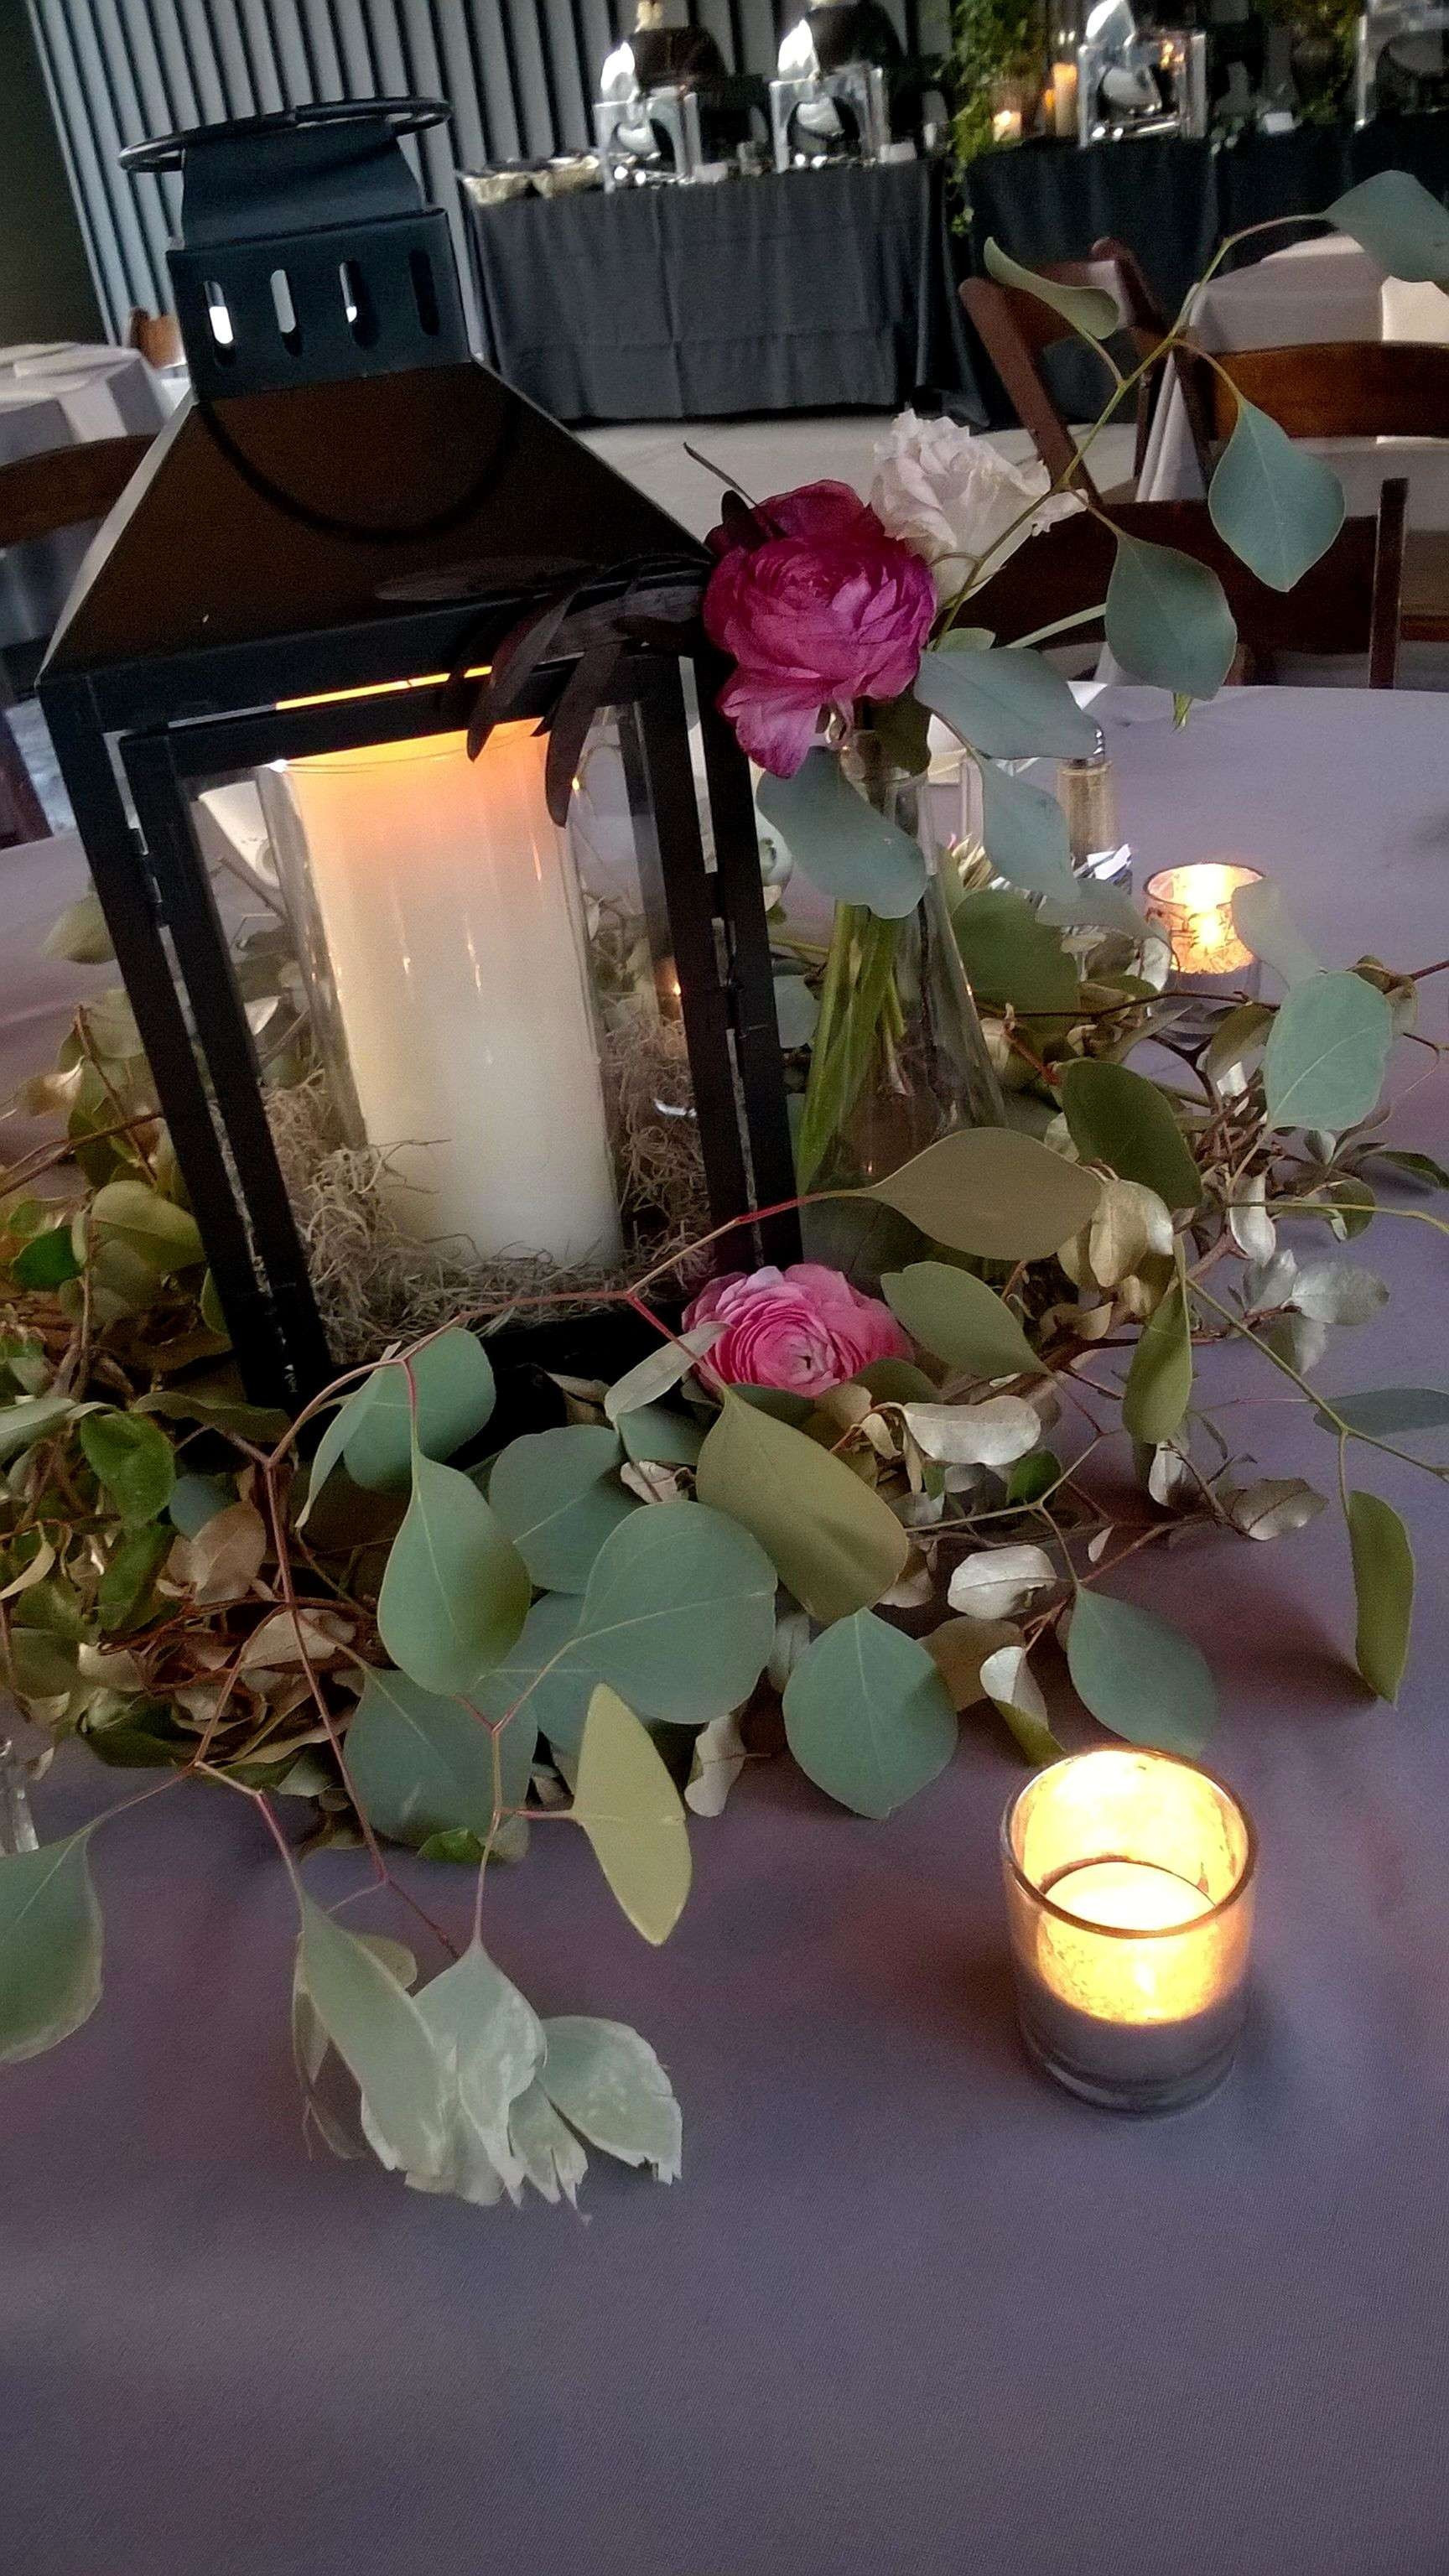 14 Awesome Candles In Vases for Weddings 2021 free download candles in vases for weddings of good wedding party favors elegant bulk wedding decorations dsc h for good wedding party favors inspirational easy wedding decorations new i pinimg originals